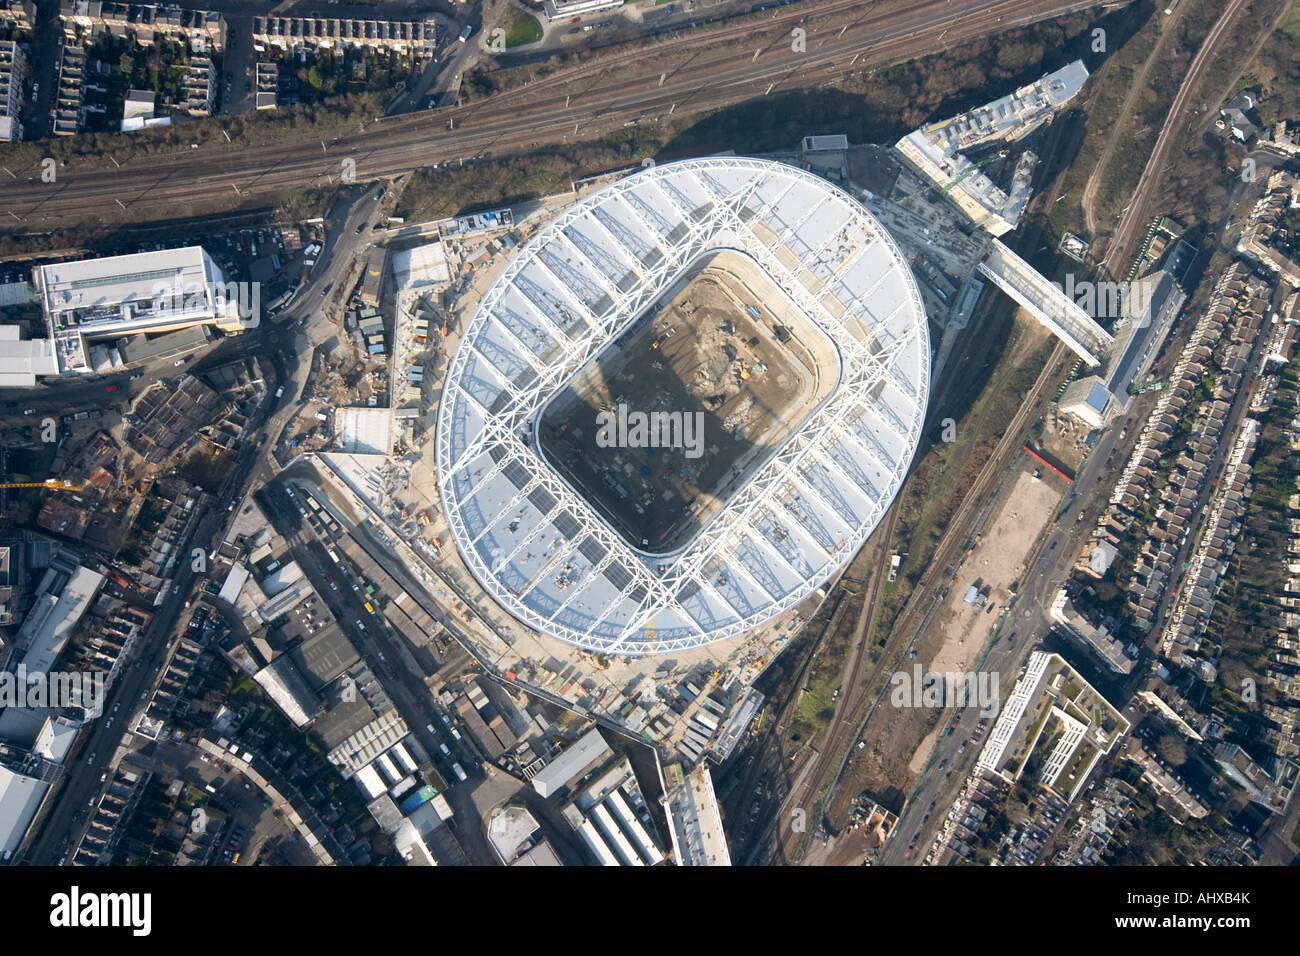 High Level Vertical Aerial View Of Arsenal Football Club Emirates Stadium Building Construction Site London N5 England UK Janua